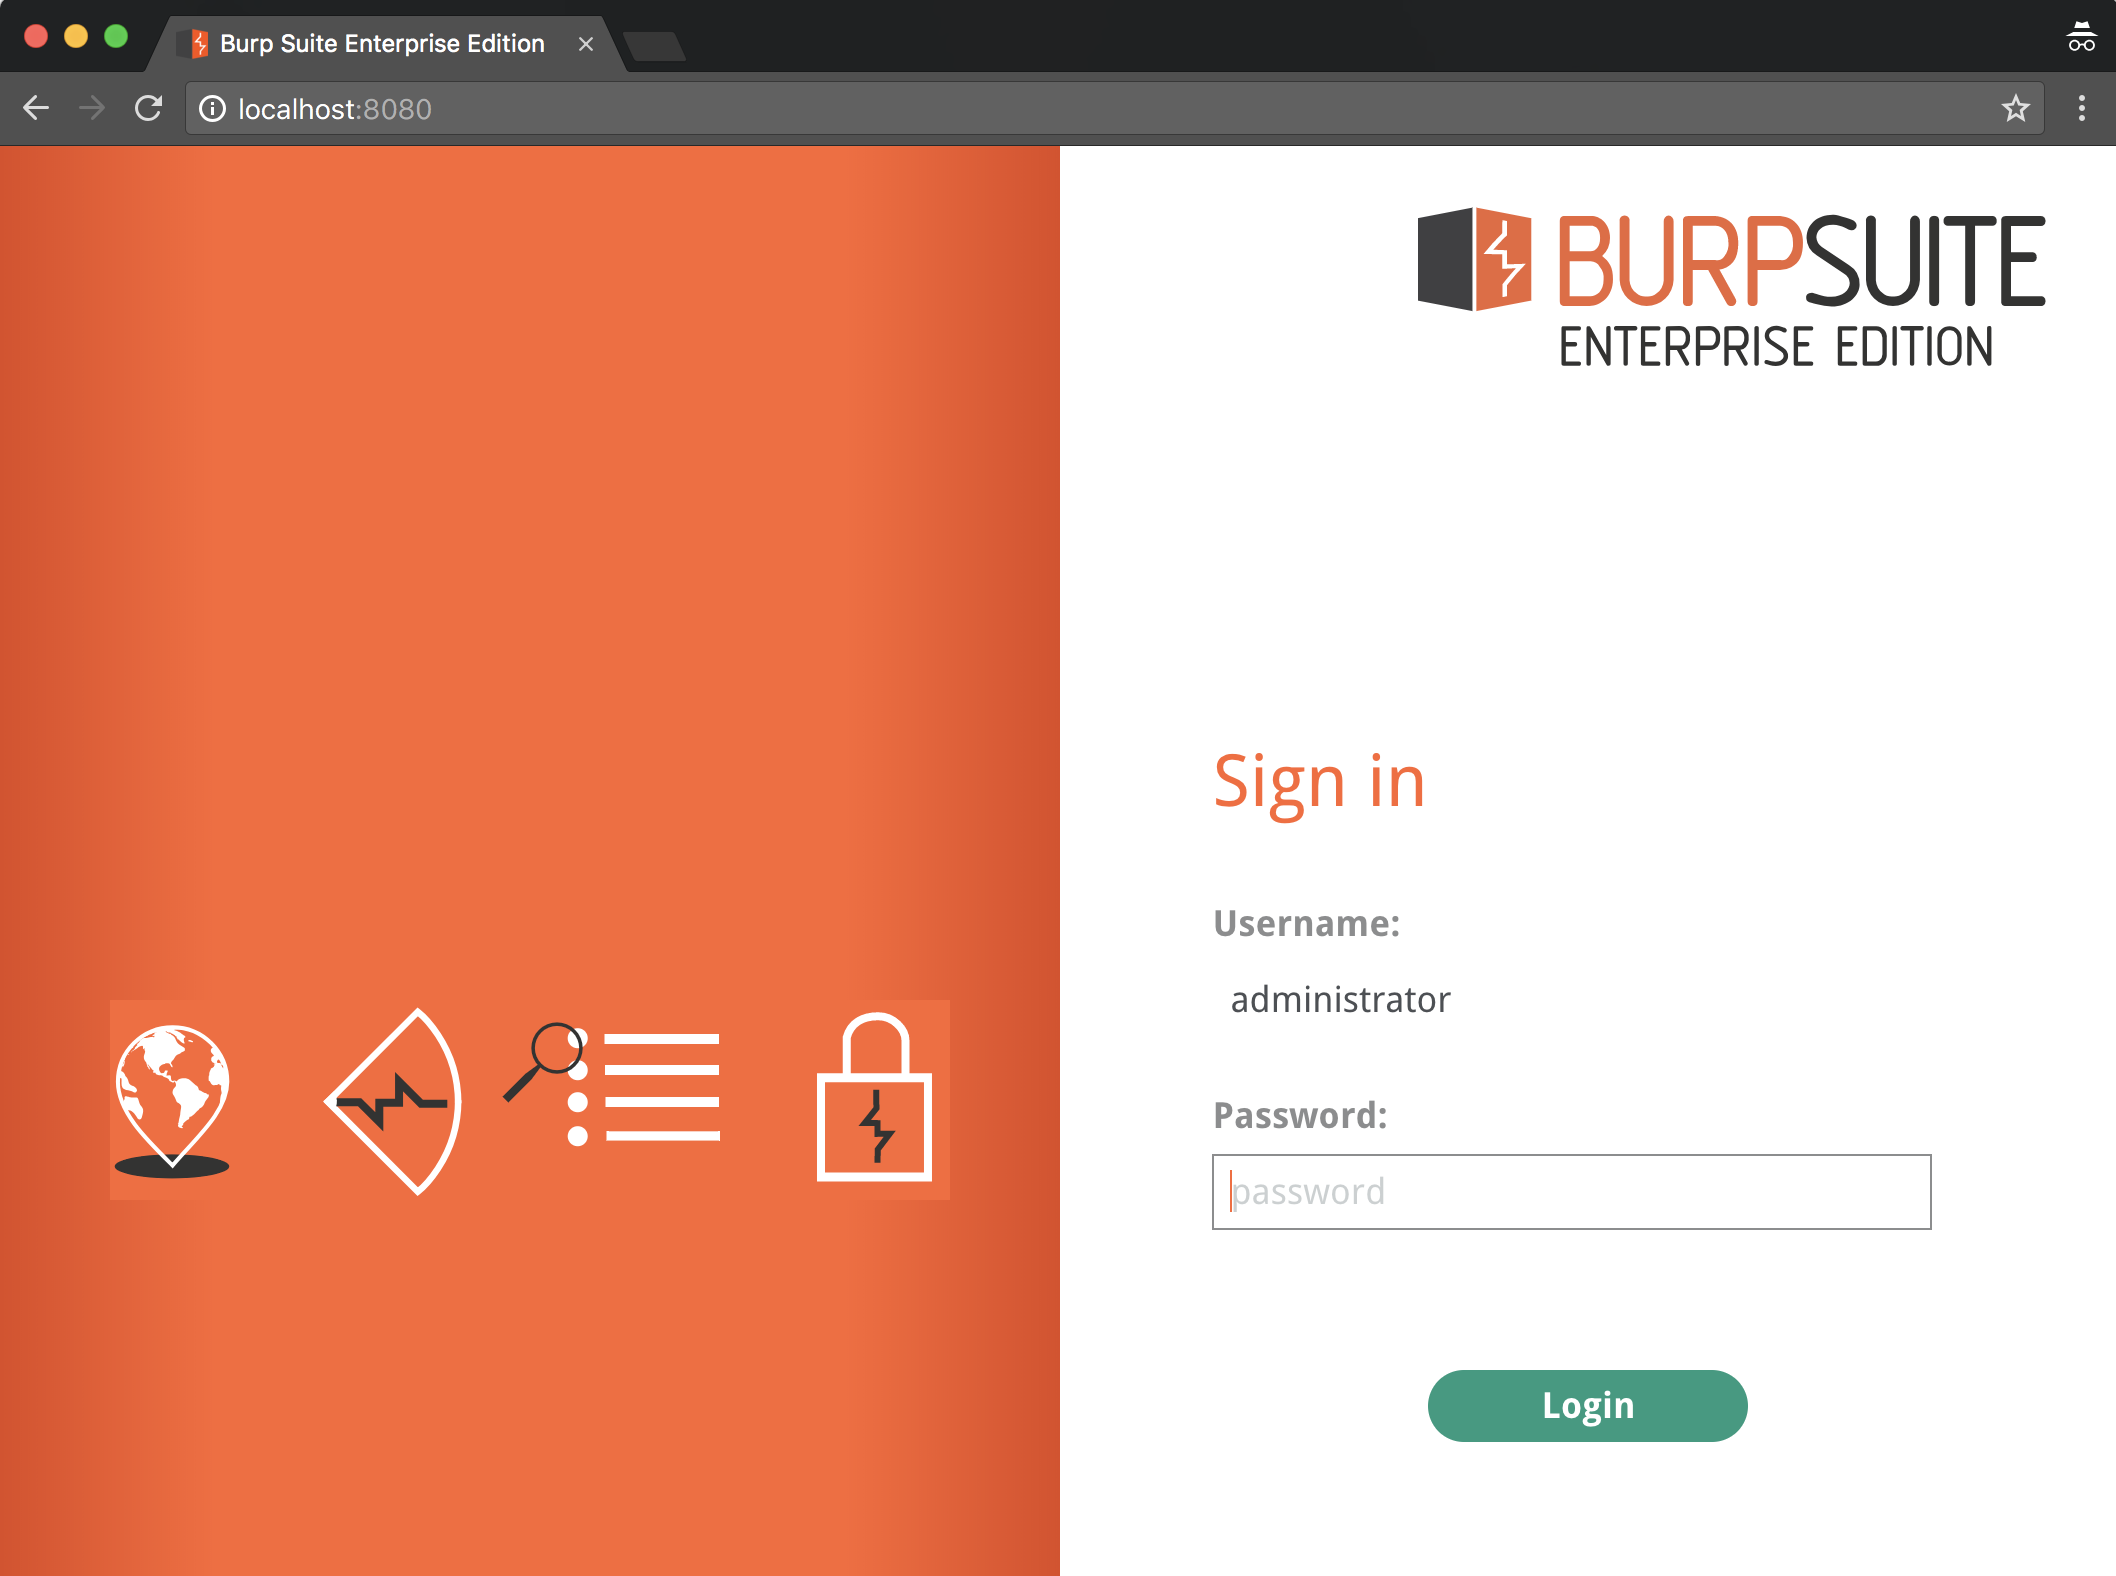 Burp's new Enterprise version and REST API